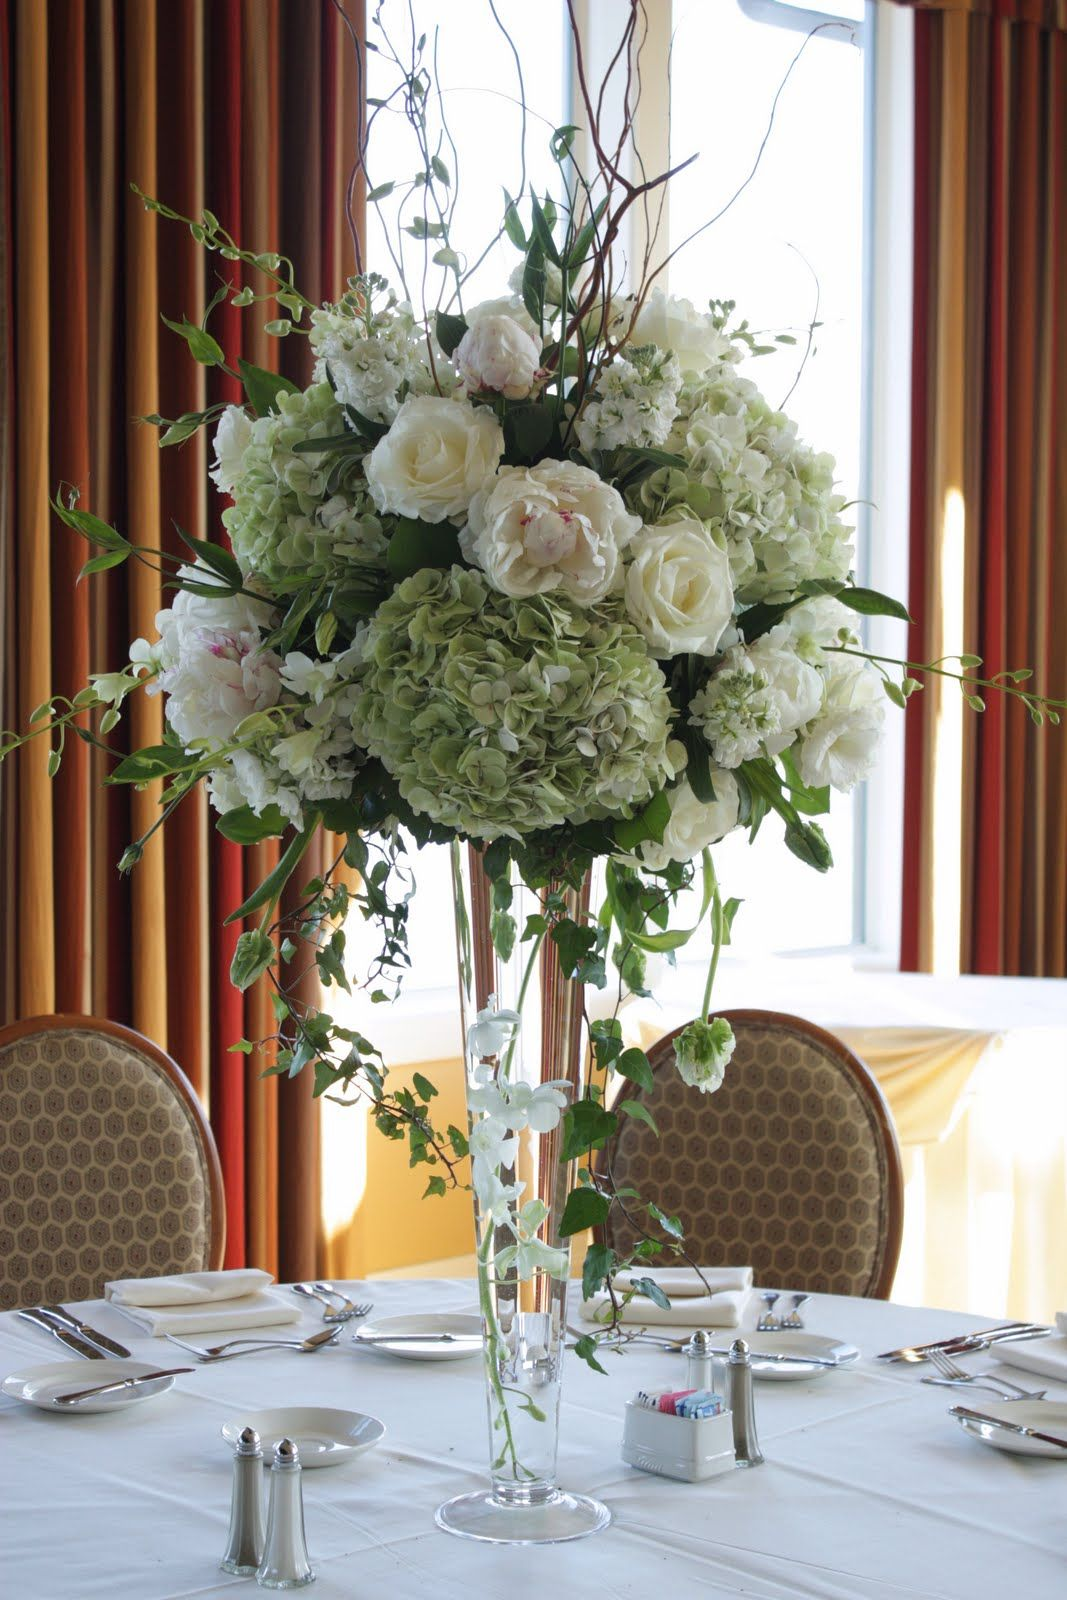 Decorations Tips, White Green Tall Centerpieces With Tall Vases: Designing  Tall Wedding Centerpieces On A Budget Part 93